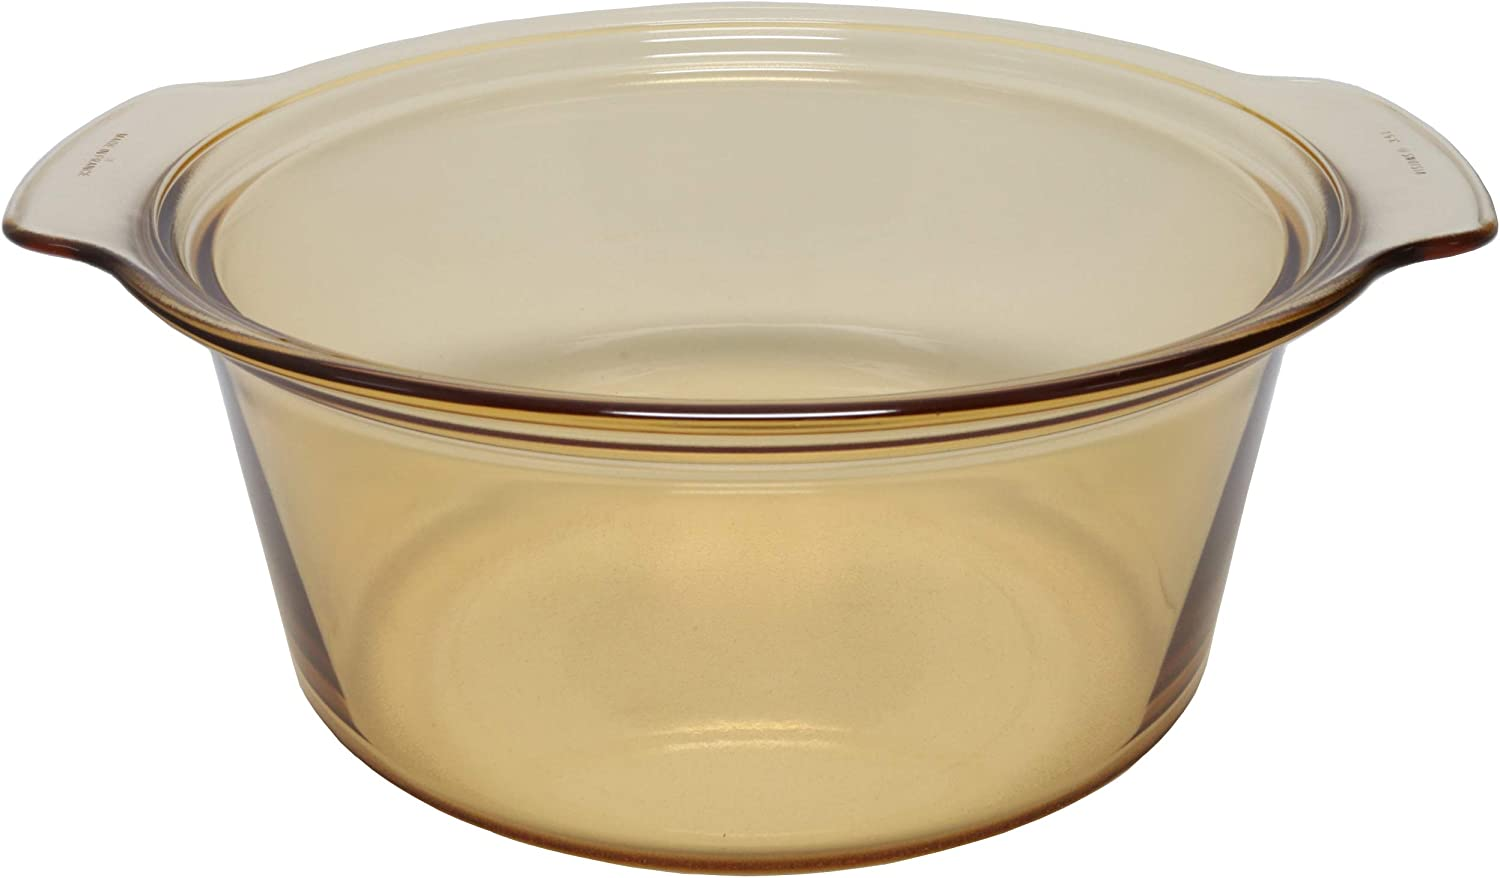 Discount is also underway Visions 1055327 5 popular 3.5 L Casserole Dutch Glass Round Amber Pot Oven